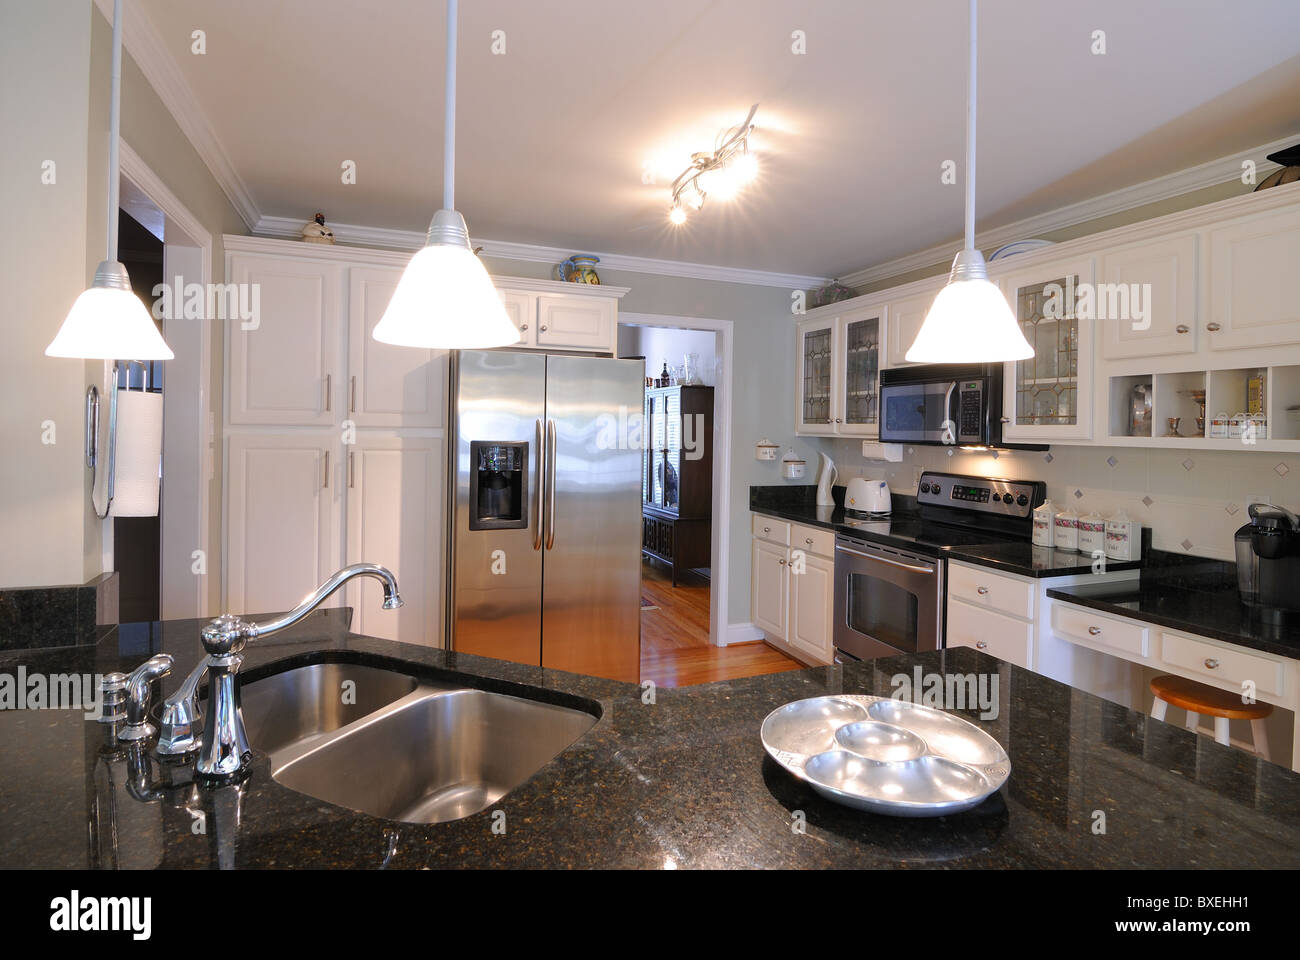 Modern Kitchen Appliances and lighting fixtures - Stock Image